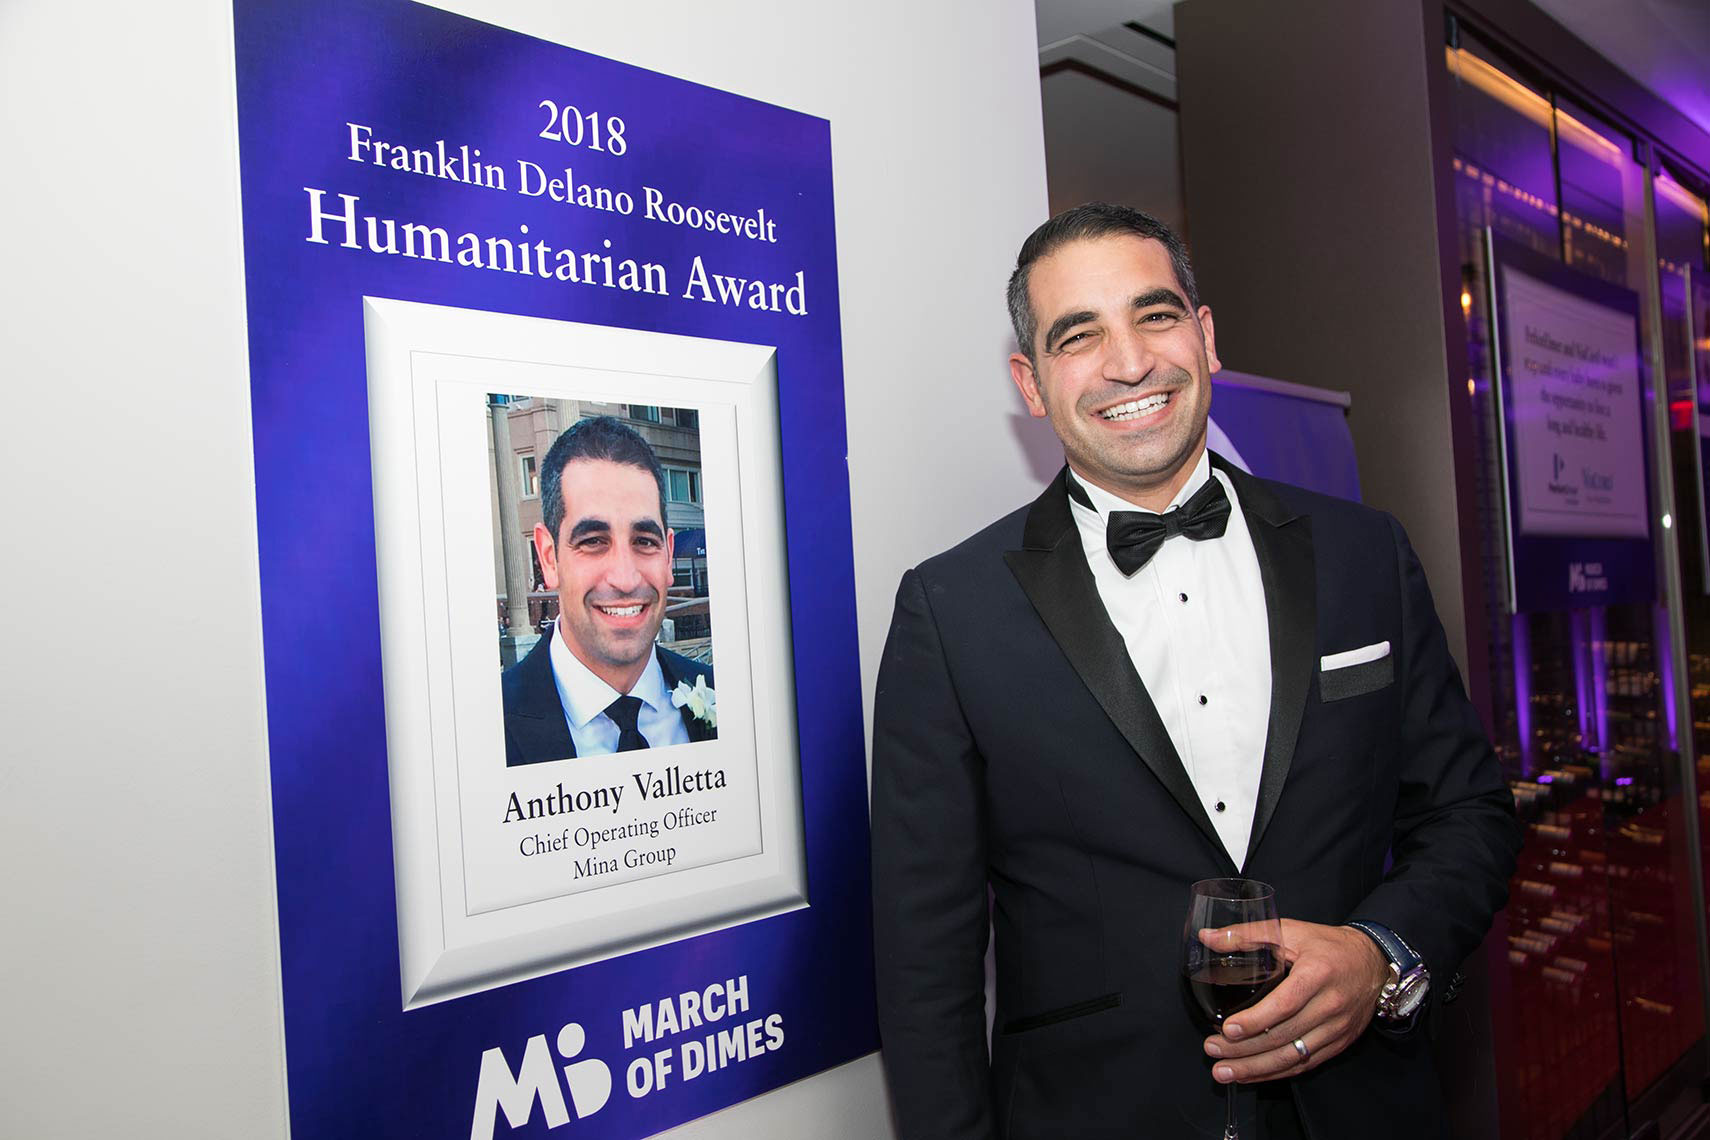 010-Humanitarian-Award-recipient-Anthony-Valletta-stands-next-to-his-promotional-sign-at-the-Black-Ties-for-Babies-gala